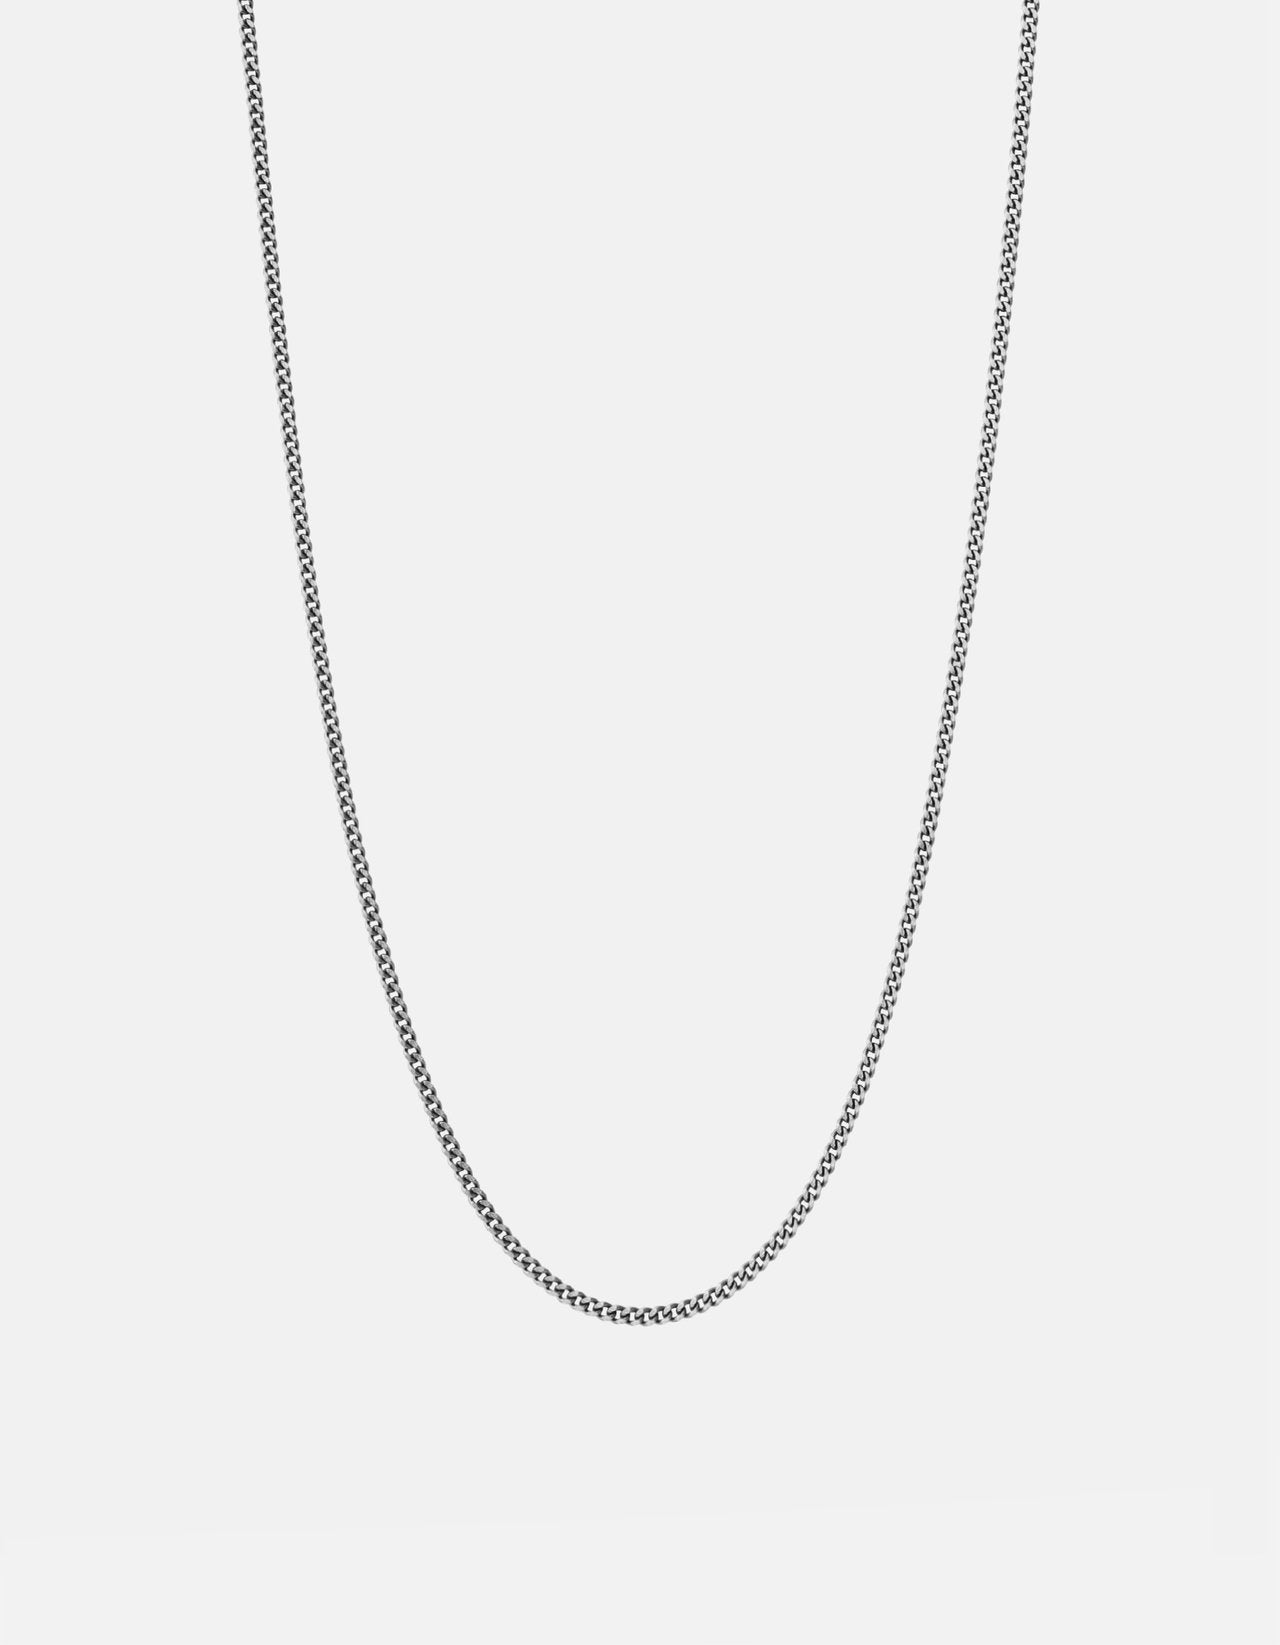 Miansai 2mm Sterling Silver Cuban Chain Necklace, Oxidized, Brushed